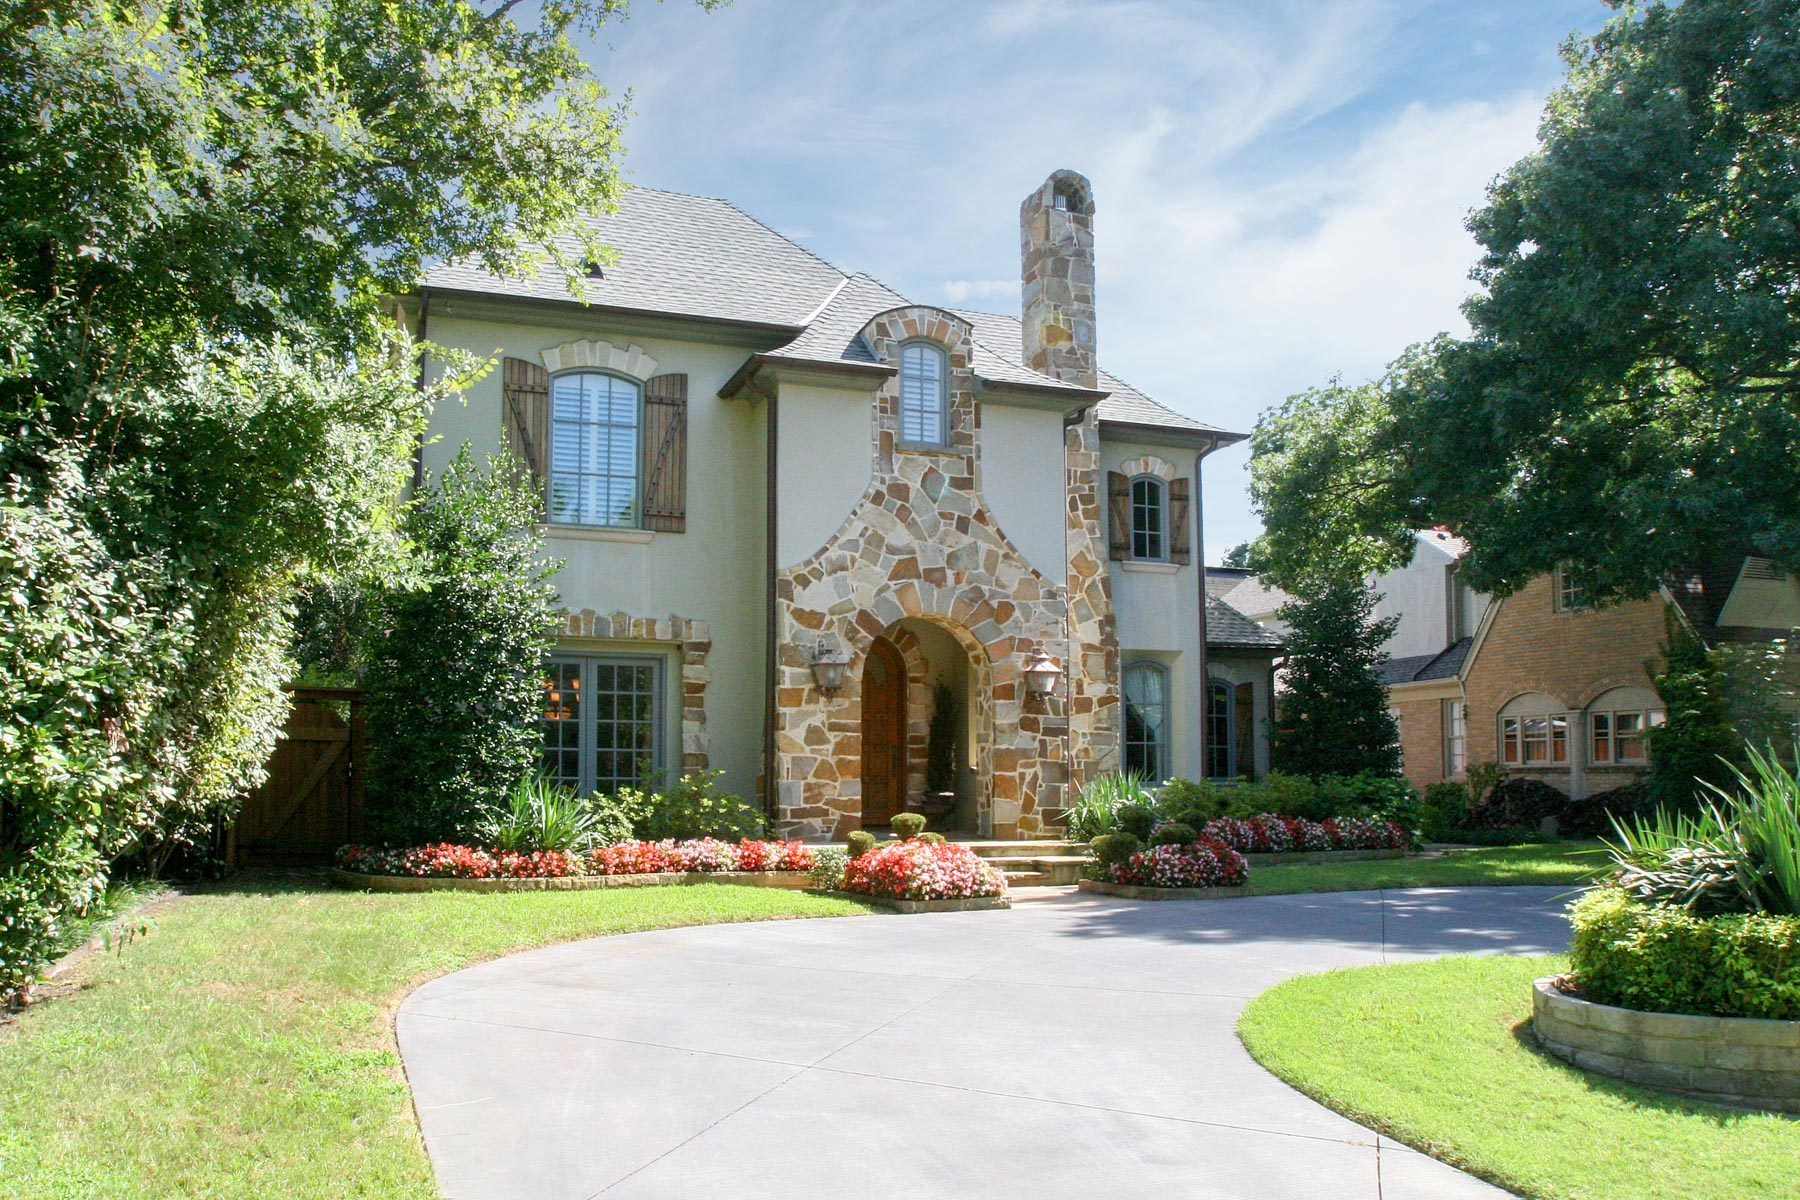 Single Family Home for Sale at 3915 Mcfarlin Boulevard, University Park 3915 Mcfarlin Blvd University Park, Texas, 75205 United States